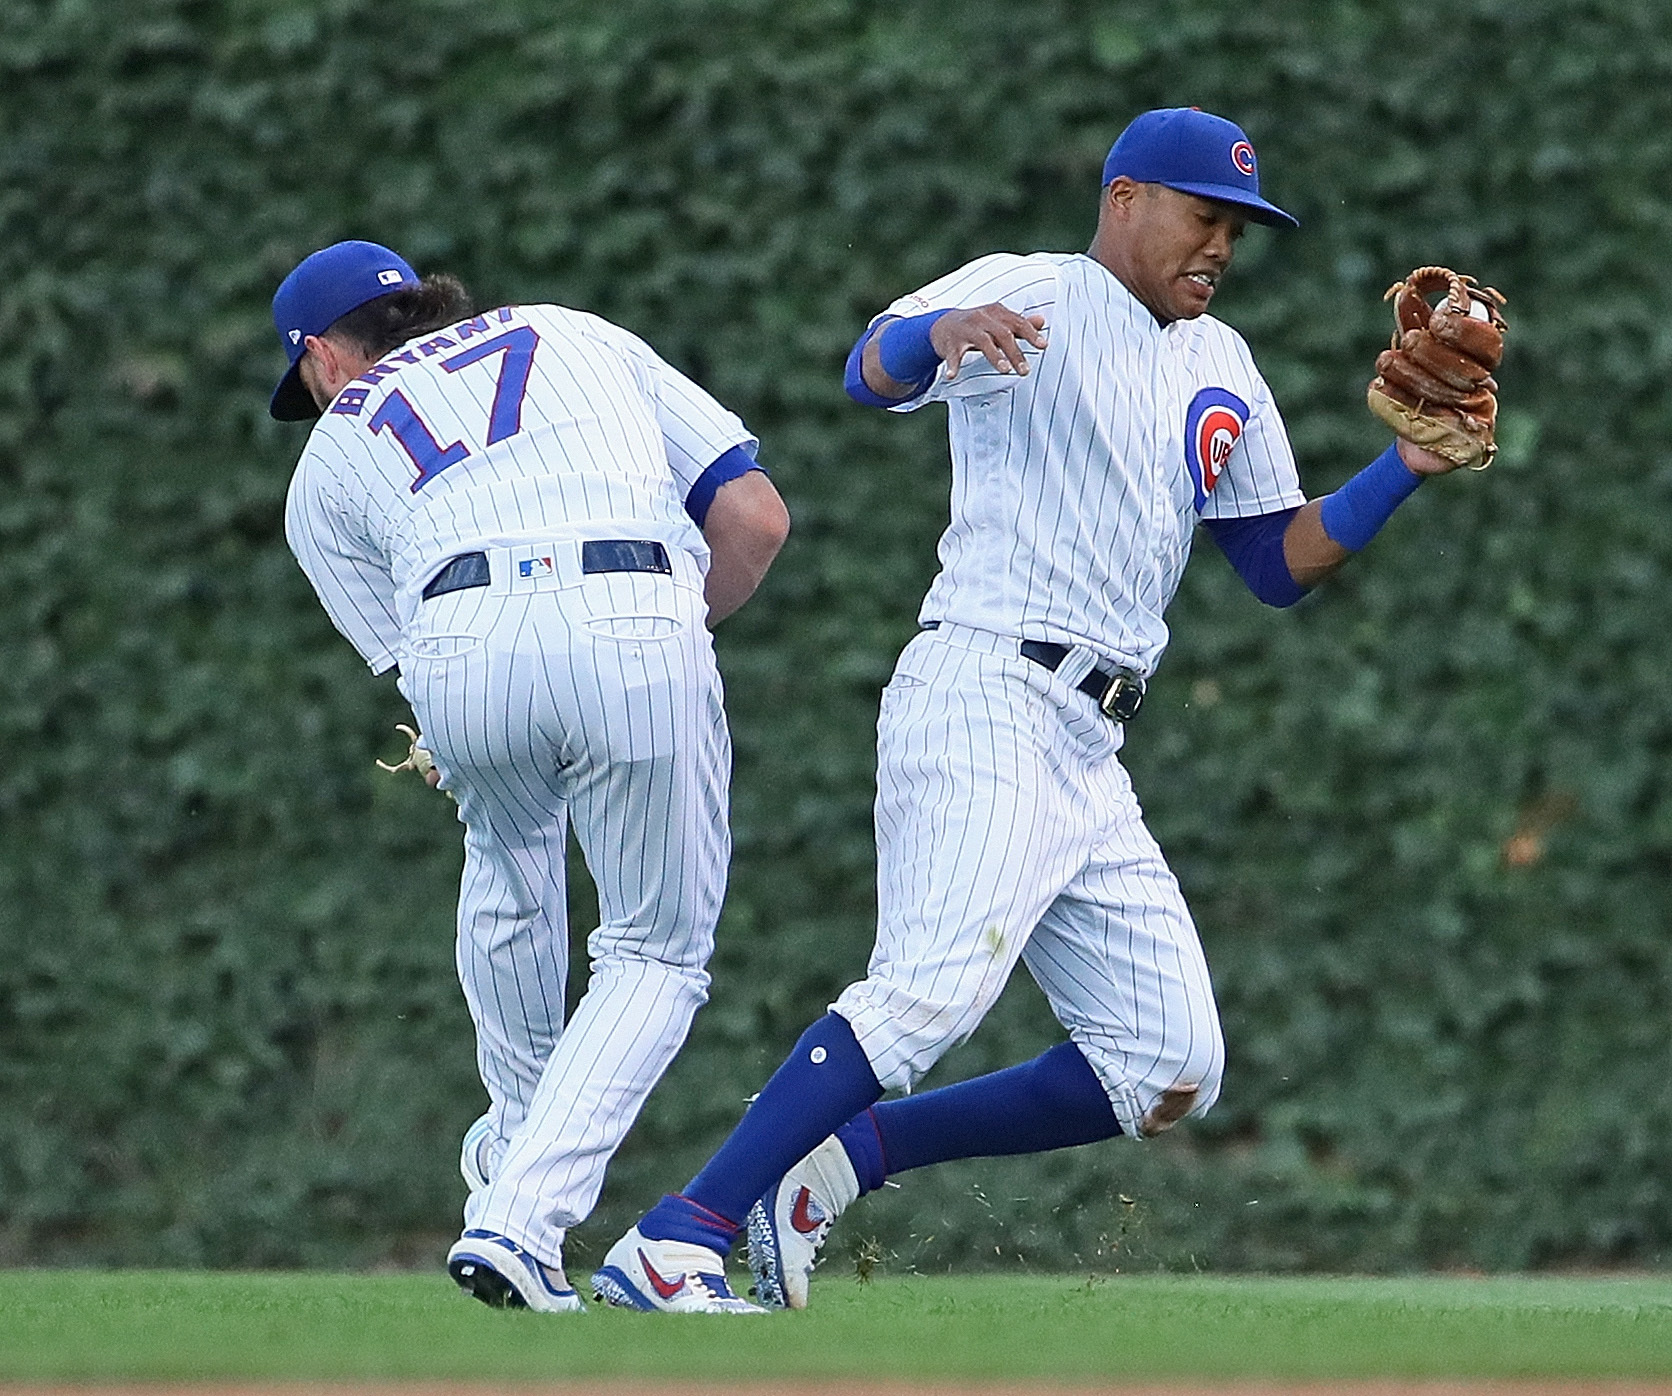 Kris Bryant #17 (L) and Addison Russell #27 of the Chicago Cubs have a minor collision as Russell makes a catch in the 1st inning against the Cincinnati Reds at Wrigley Field on July 15, 2019 in Chicago, Illinois.